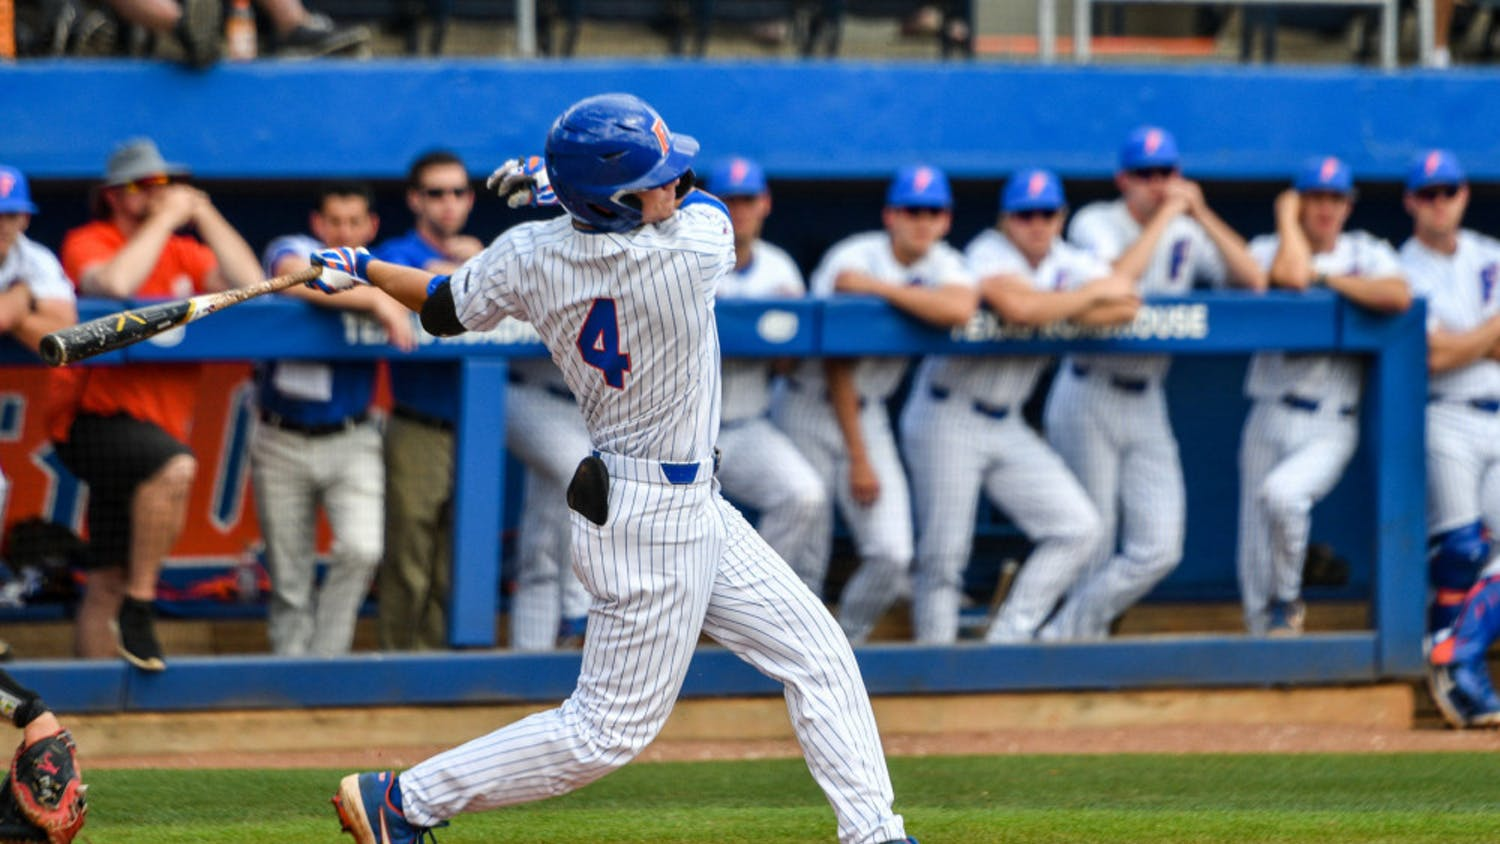 Florida outfielder Jud Fabian declined the MLB and announced he would rejoin the Gators for 2022, he announced on Twitter Saturday.